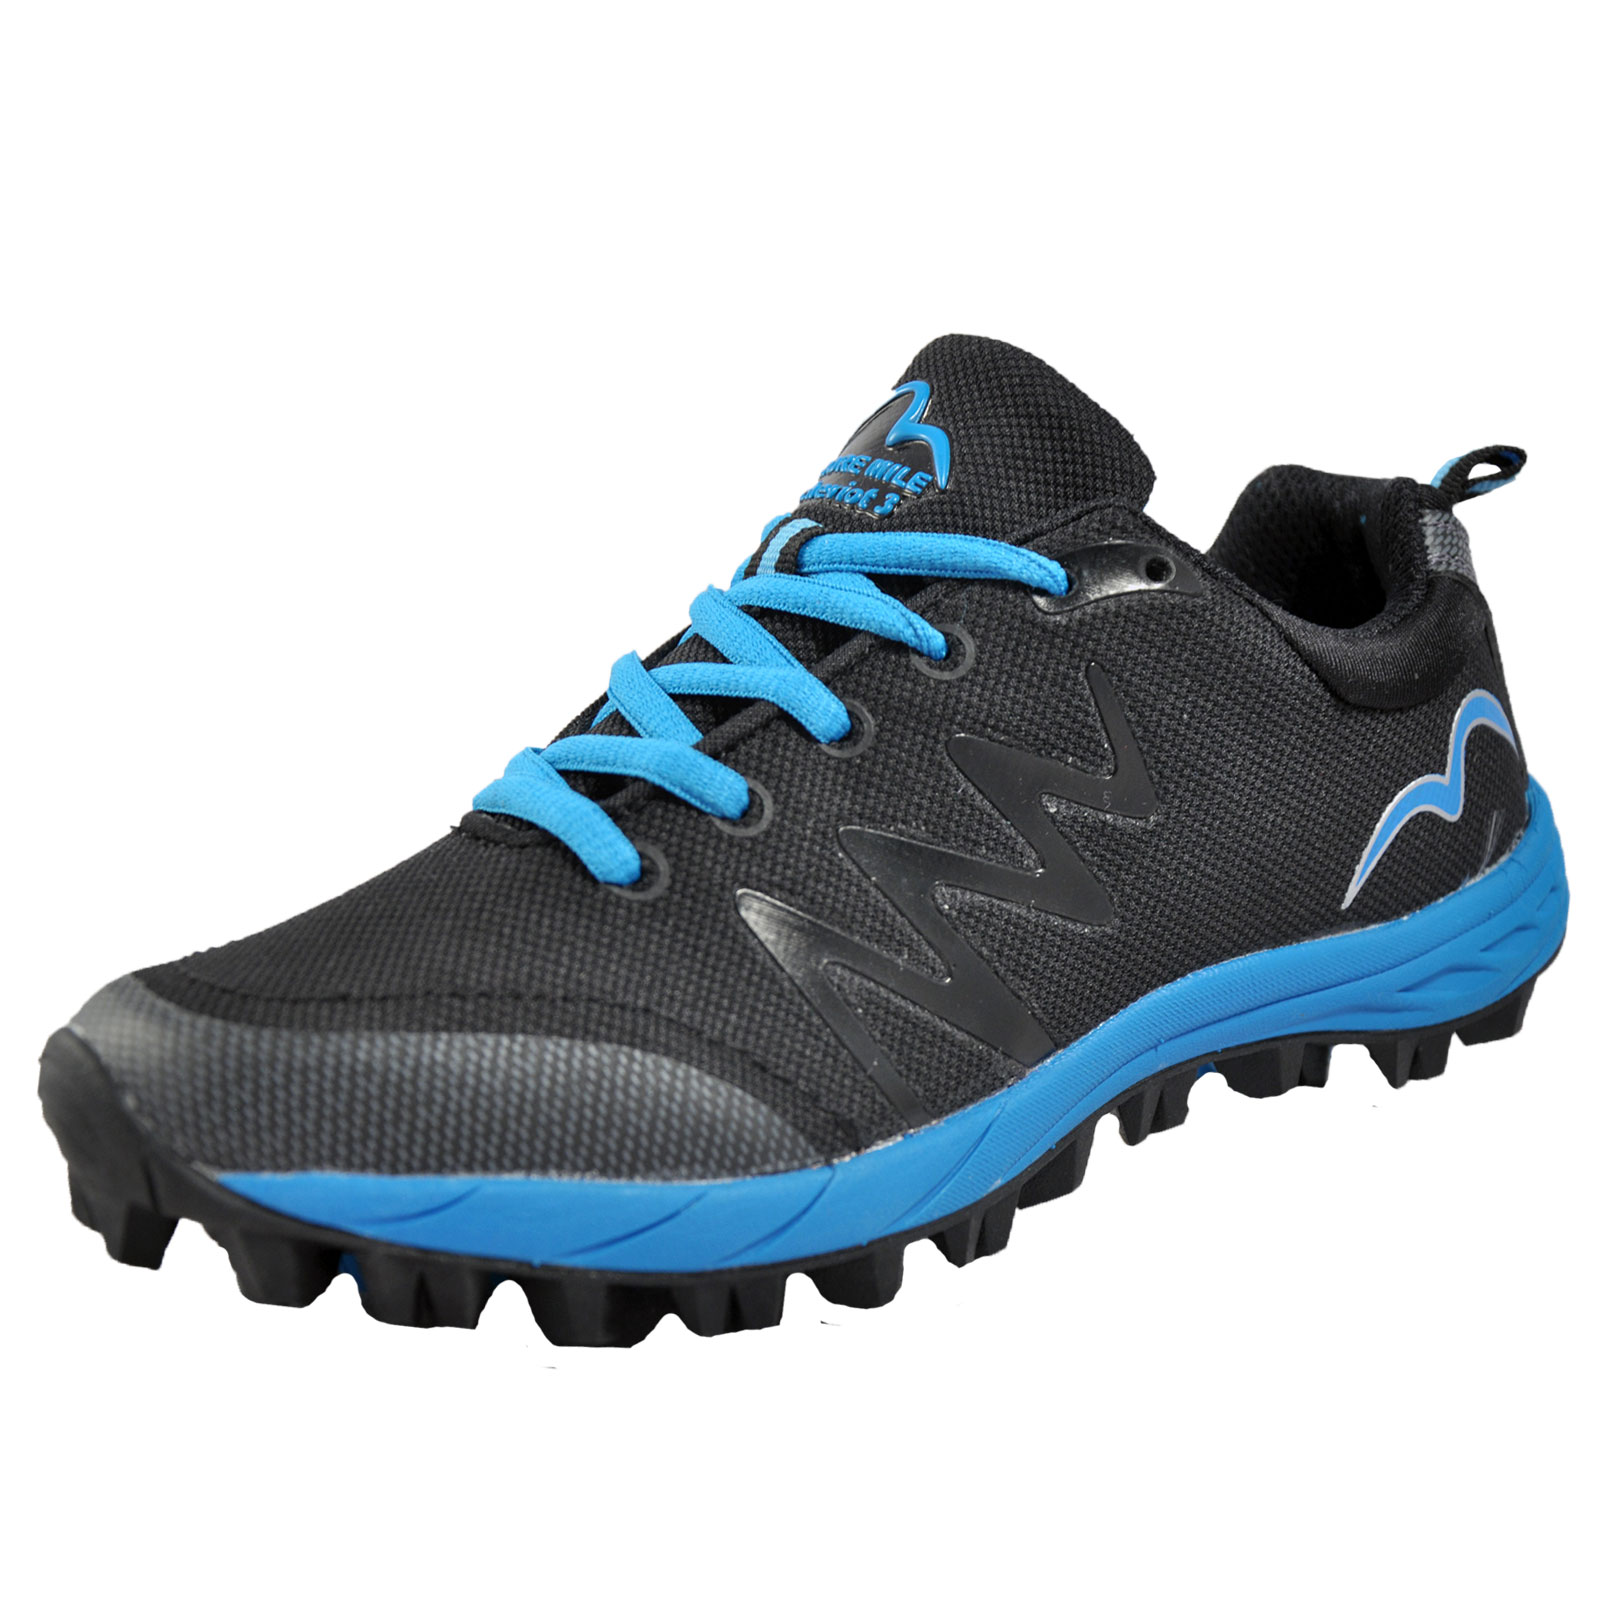 Buying Running Shoes A Half Size Bigger